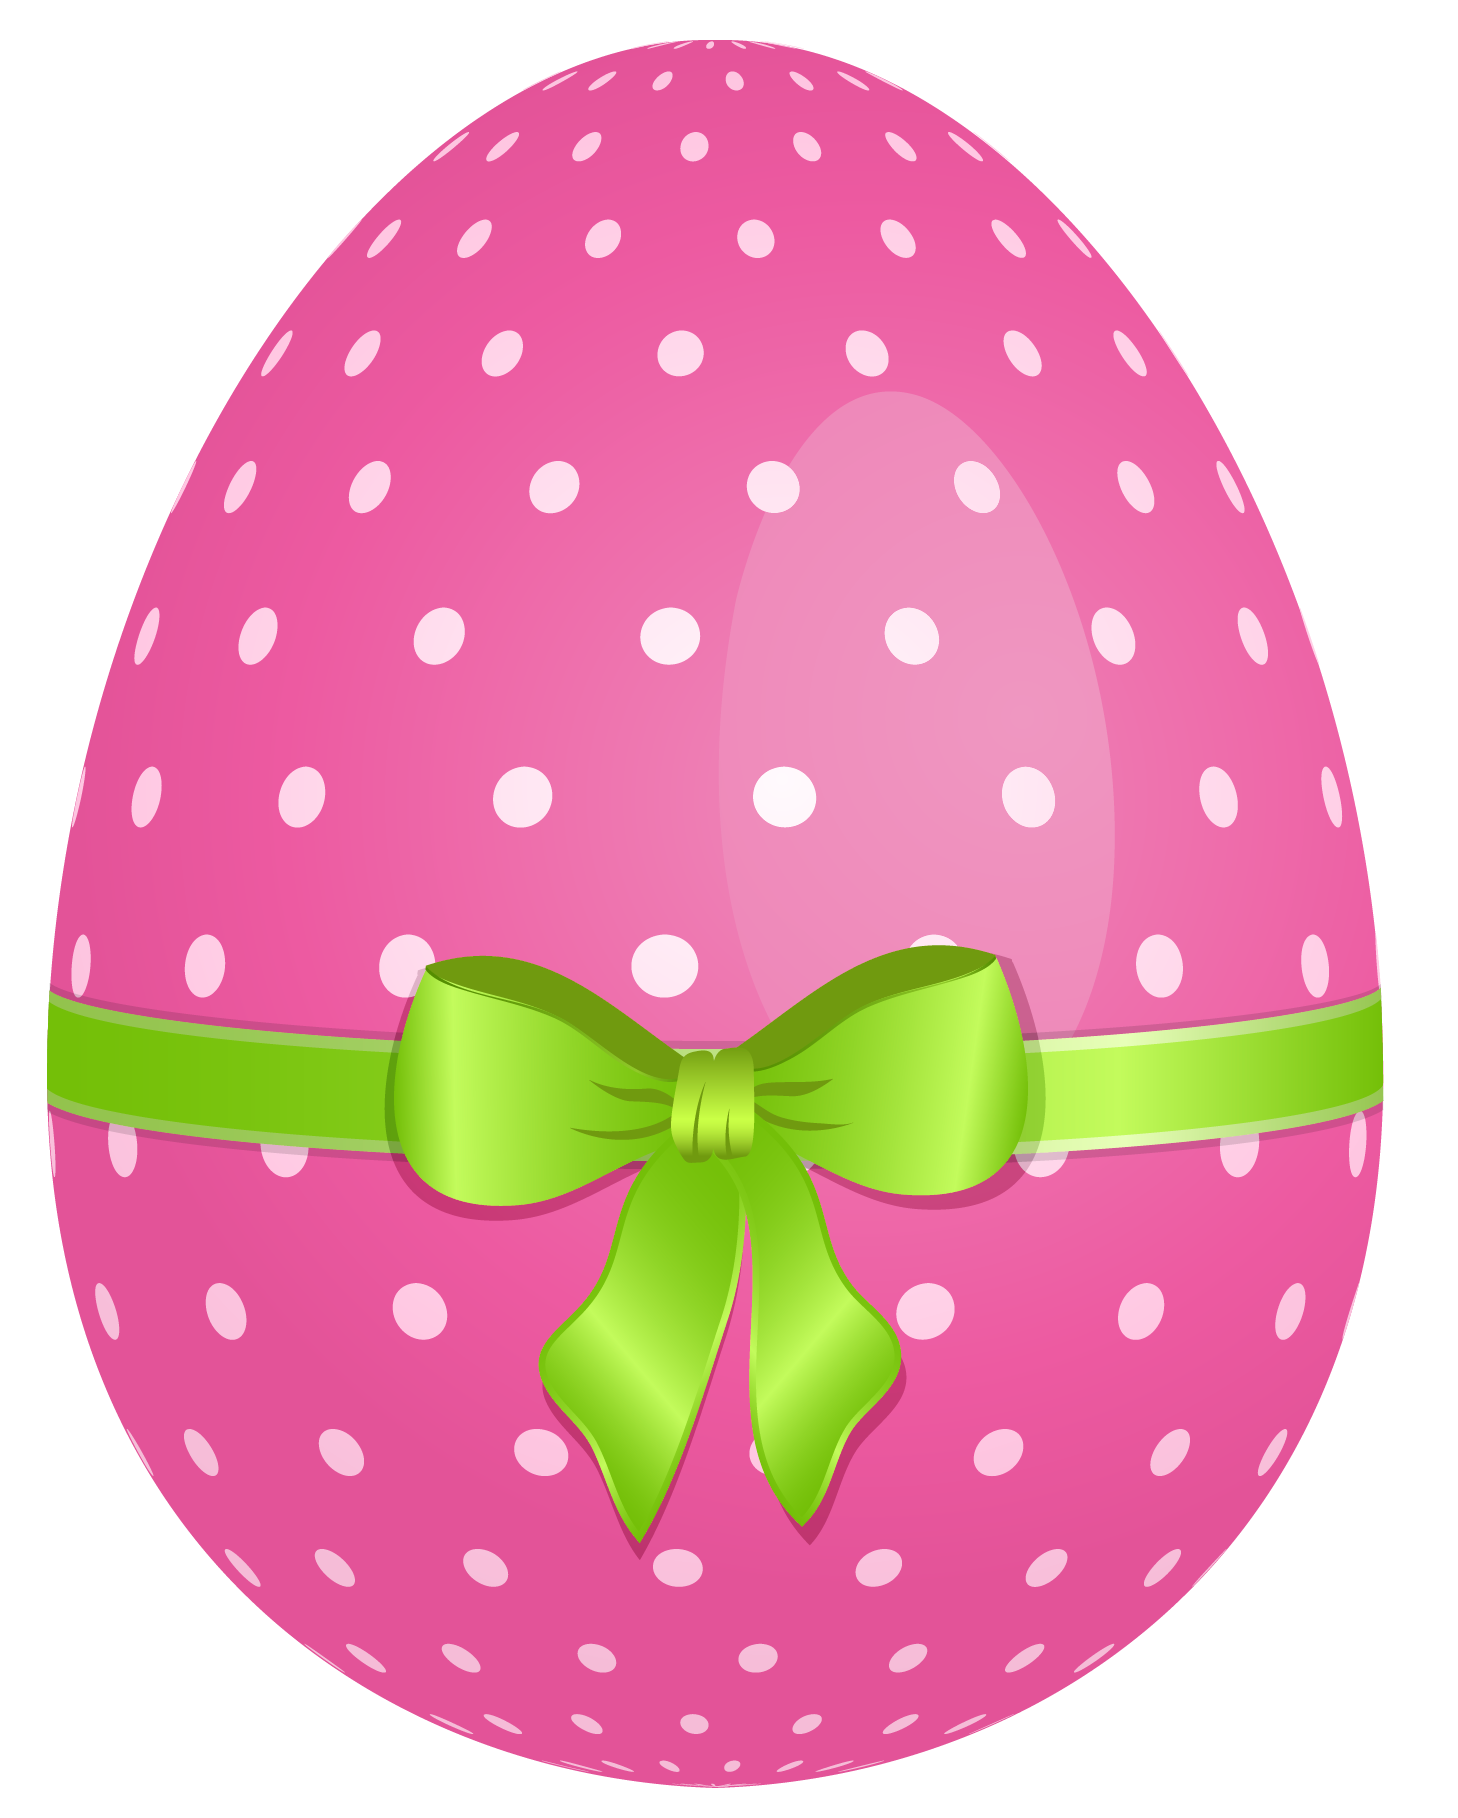 Pink dotted egg with. Bows clipart easter